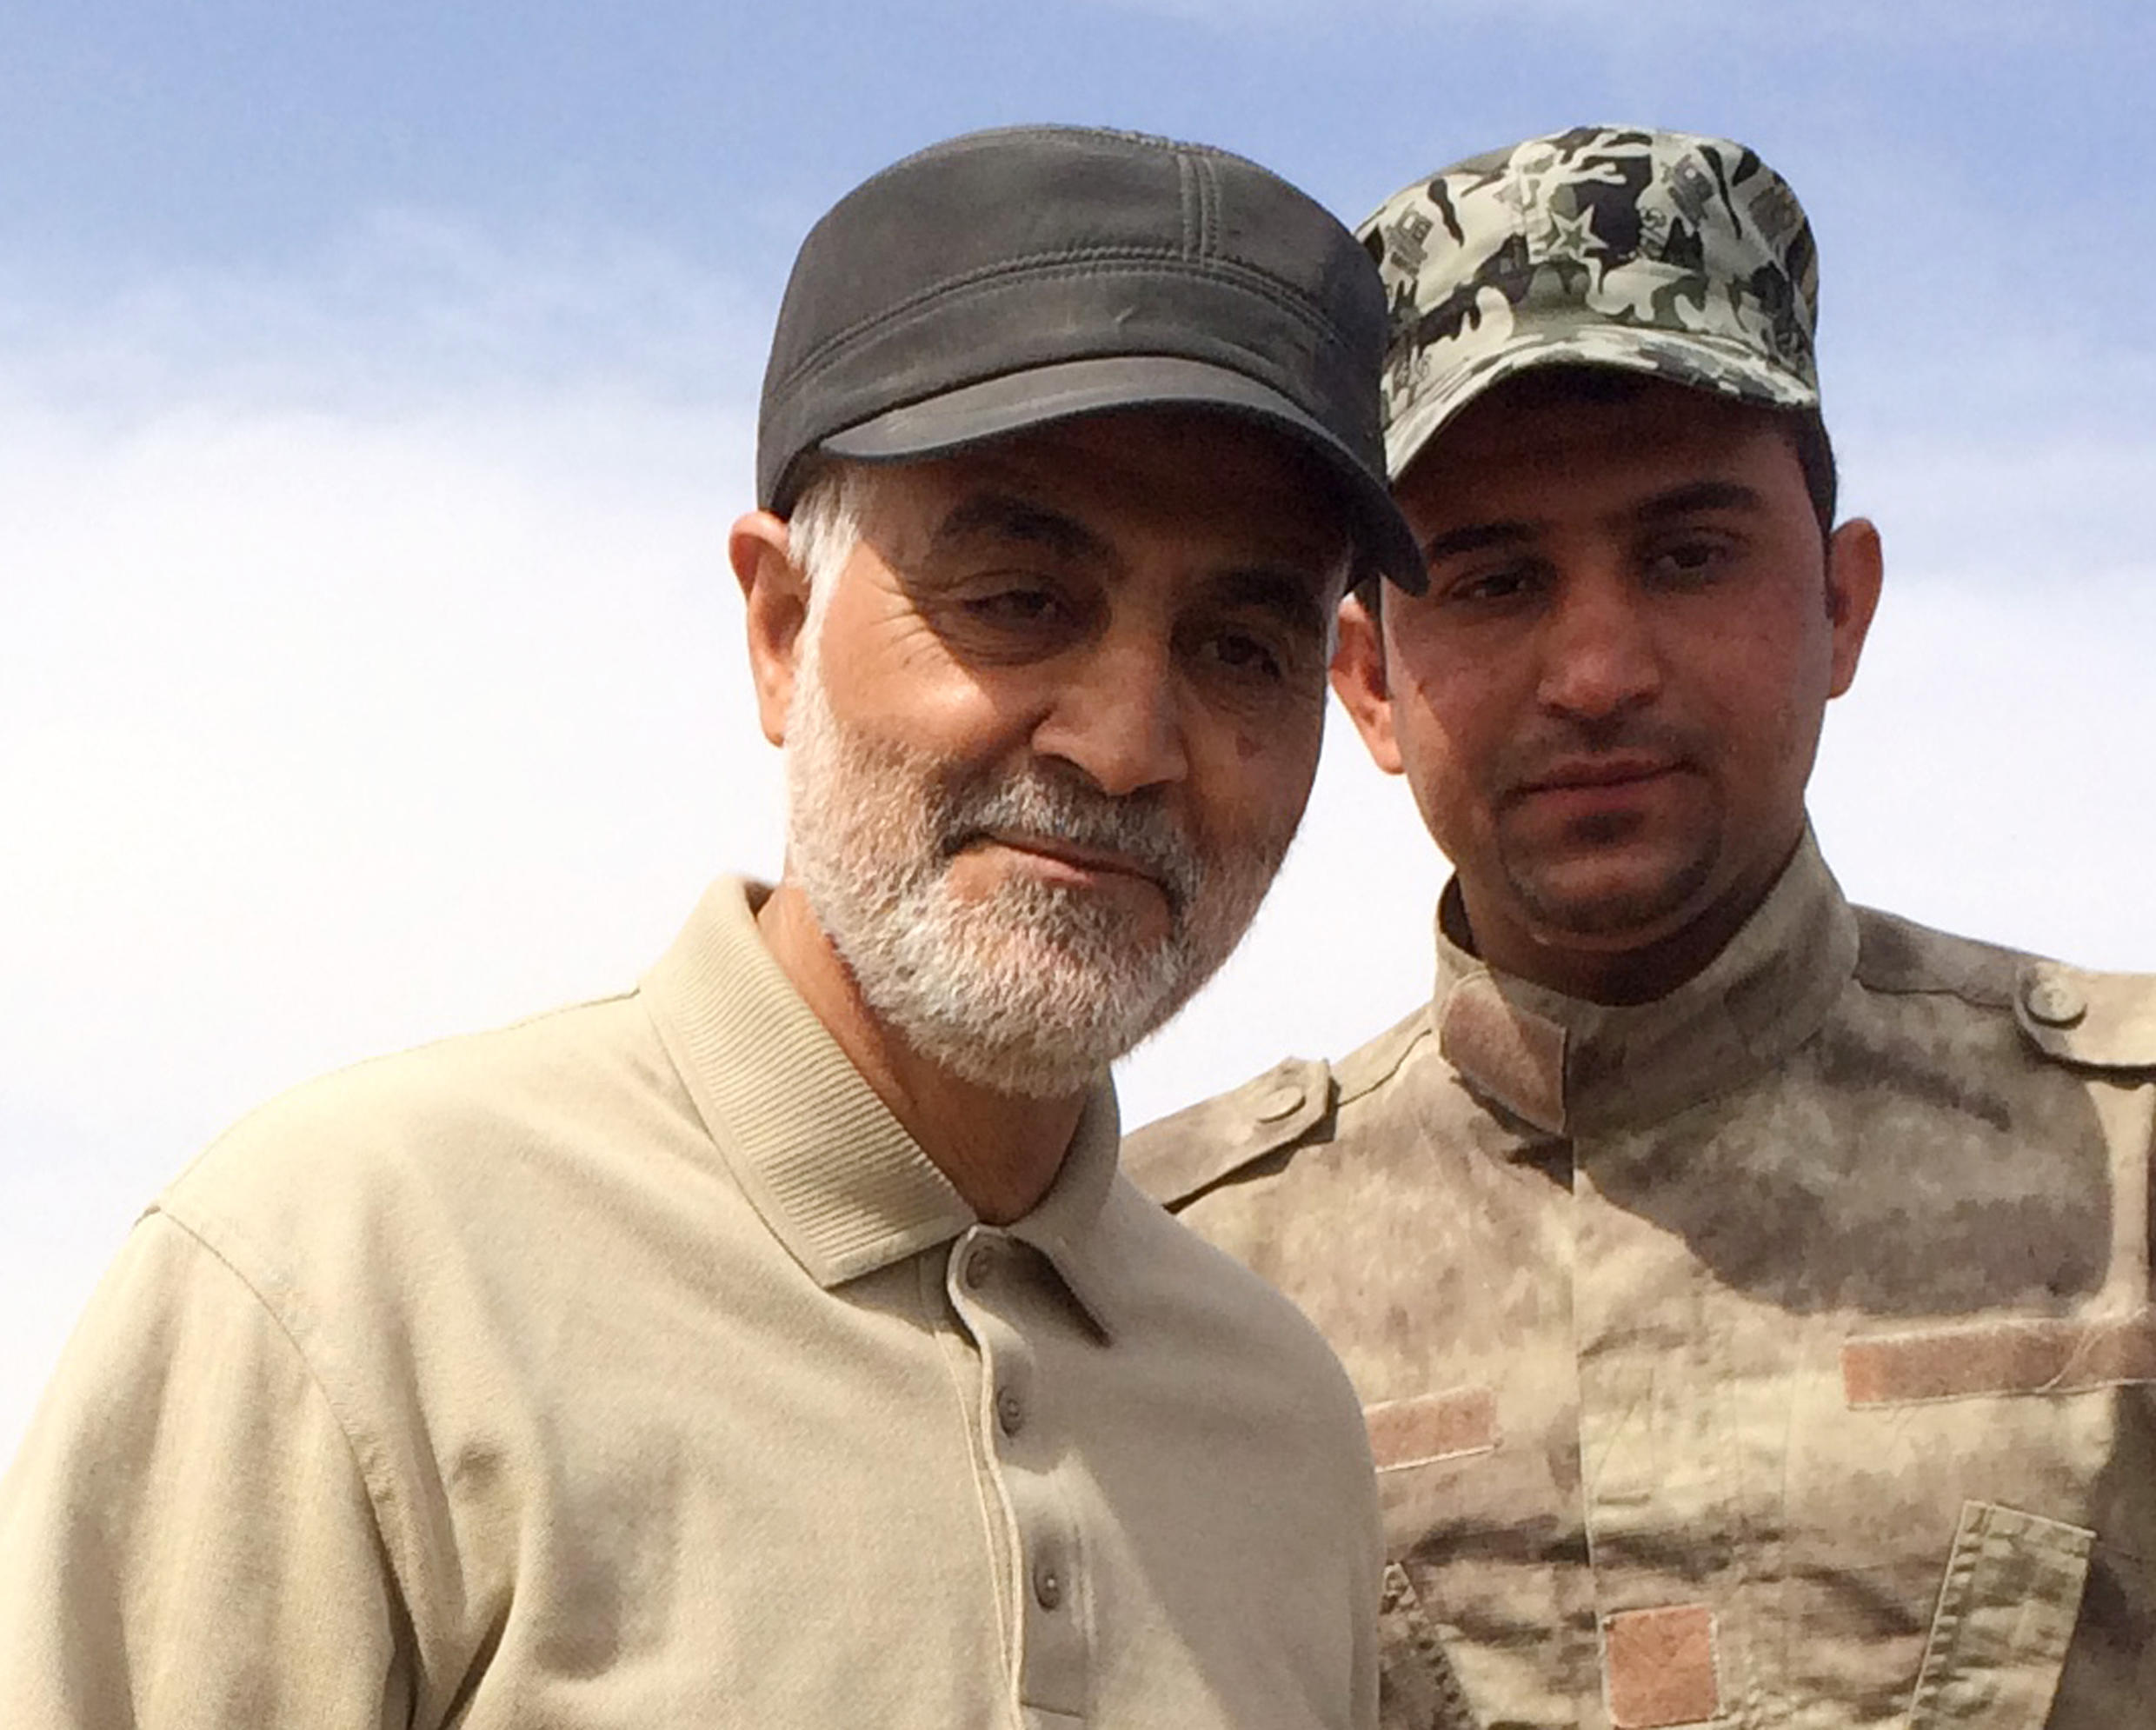 Iranian Revolutionary Guard Commander Qassem Soleimani (L) stands at the frontline during offensive operations against Islamic State militants in the town of Tal Ksaiba in Salahuddin province March 8, 2015. Picture taken March 8, 2015.